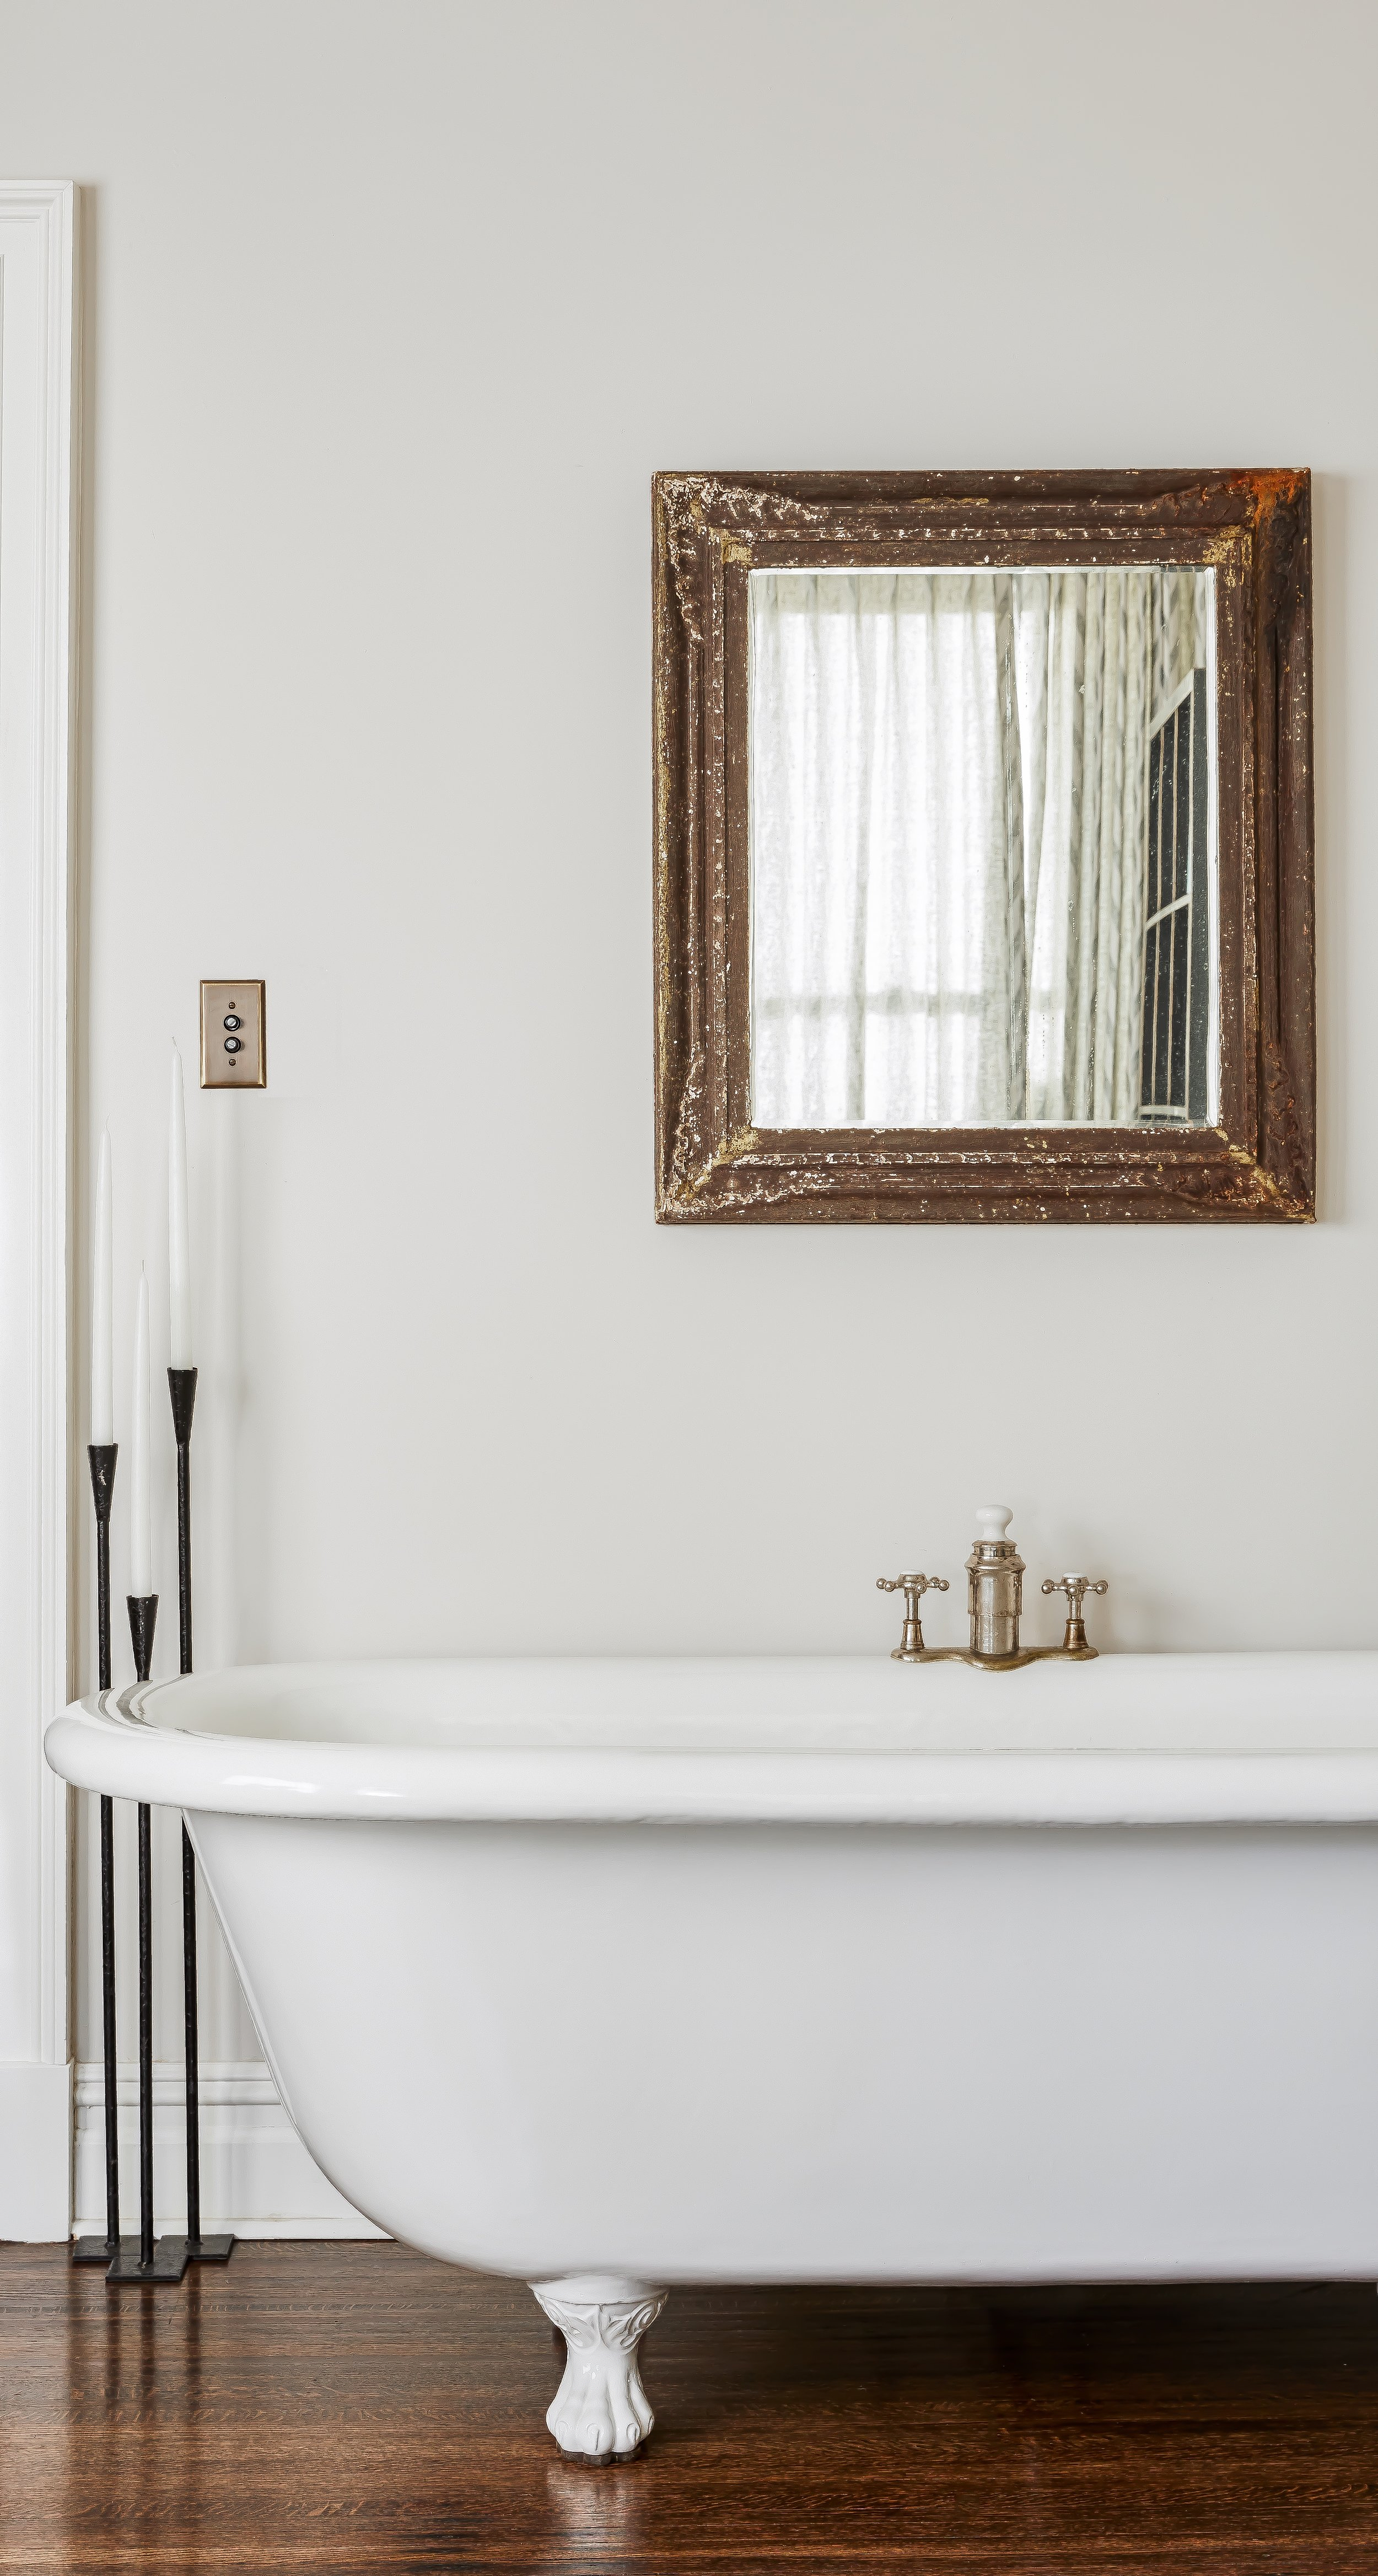 A reglazed clawfoot tub from 1870 with the original fittings replated in polished nickel, a vintage mirror from United House Wrecking, vintage iron candlesticks and a push button light switch in a Brooklyn brownstone.